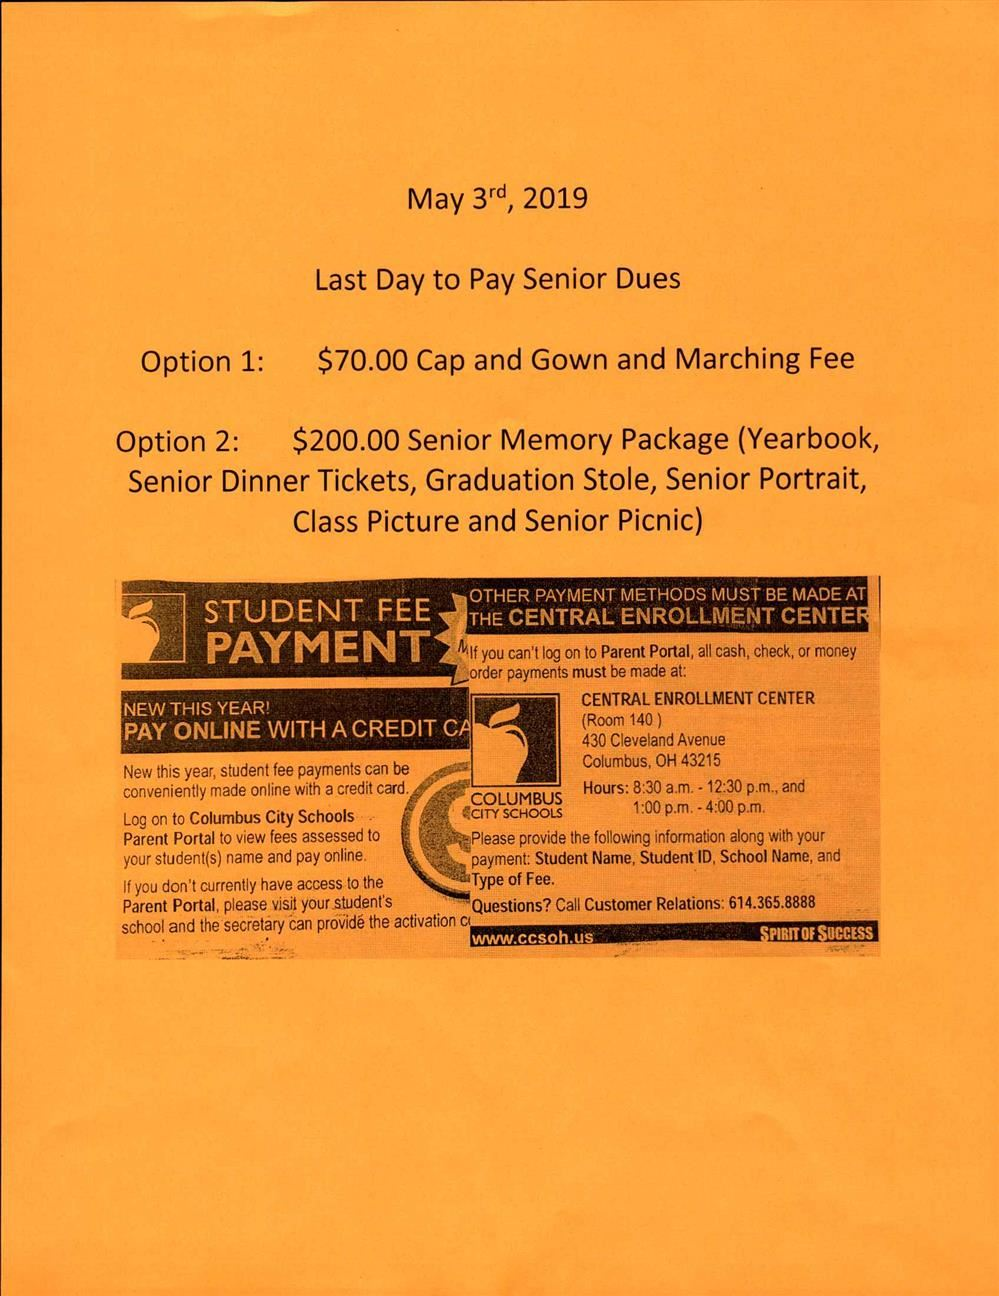 May 3rd Last Day for Senior Dues